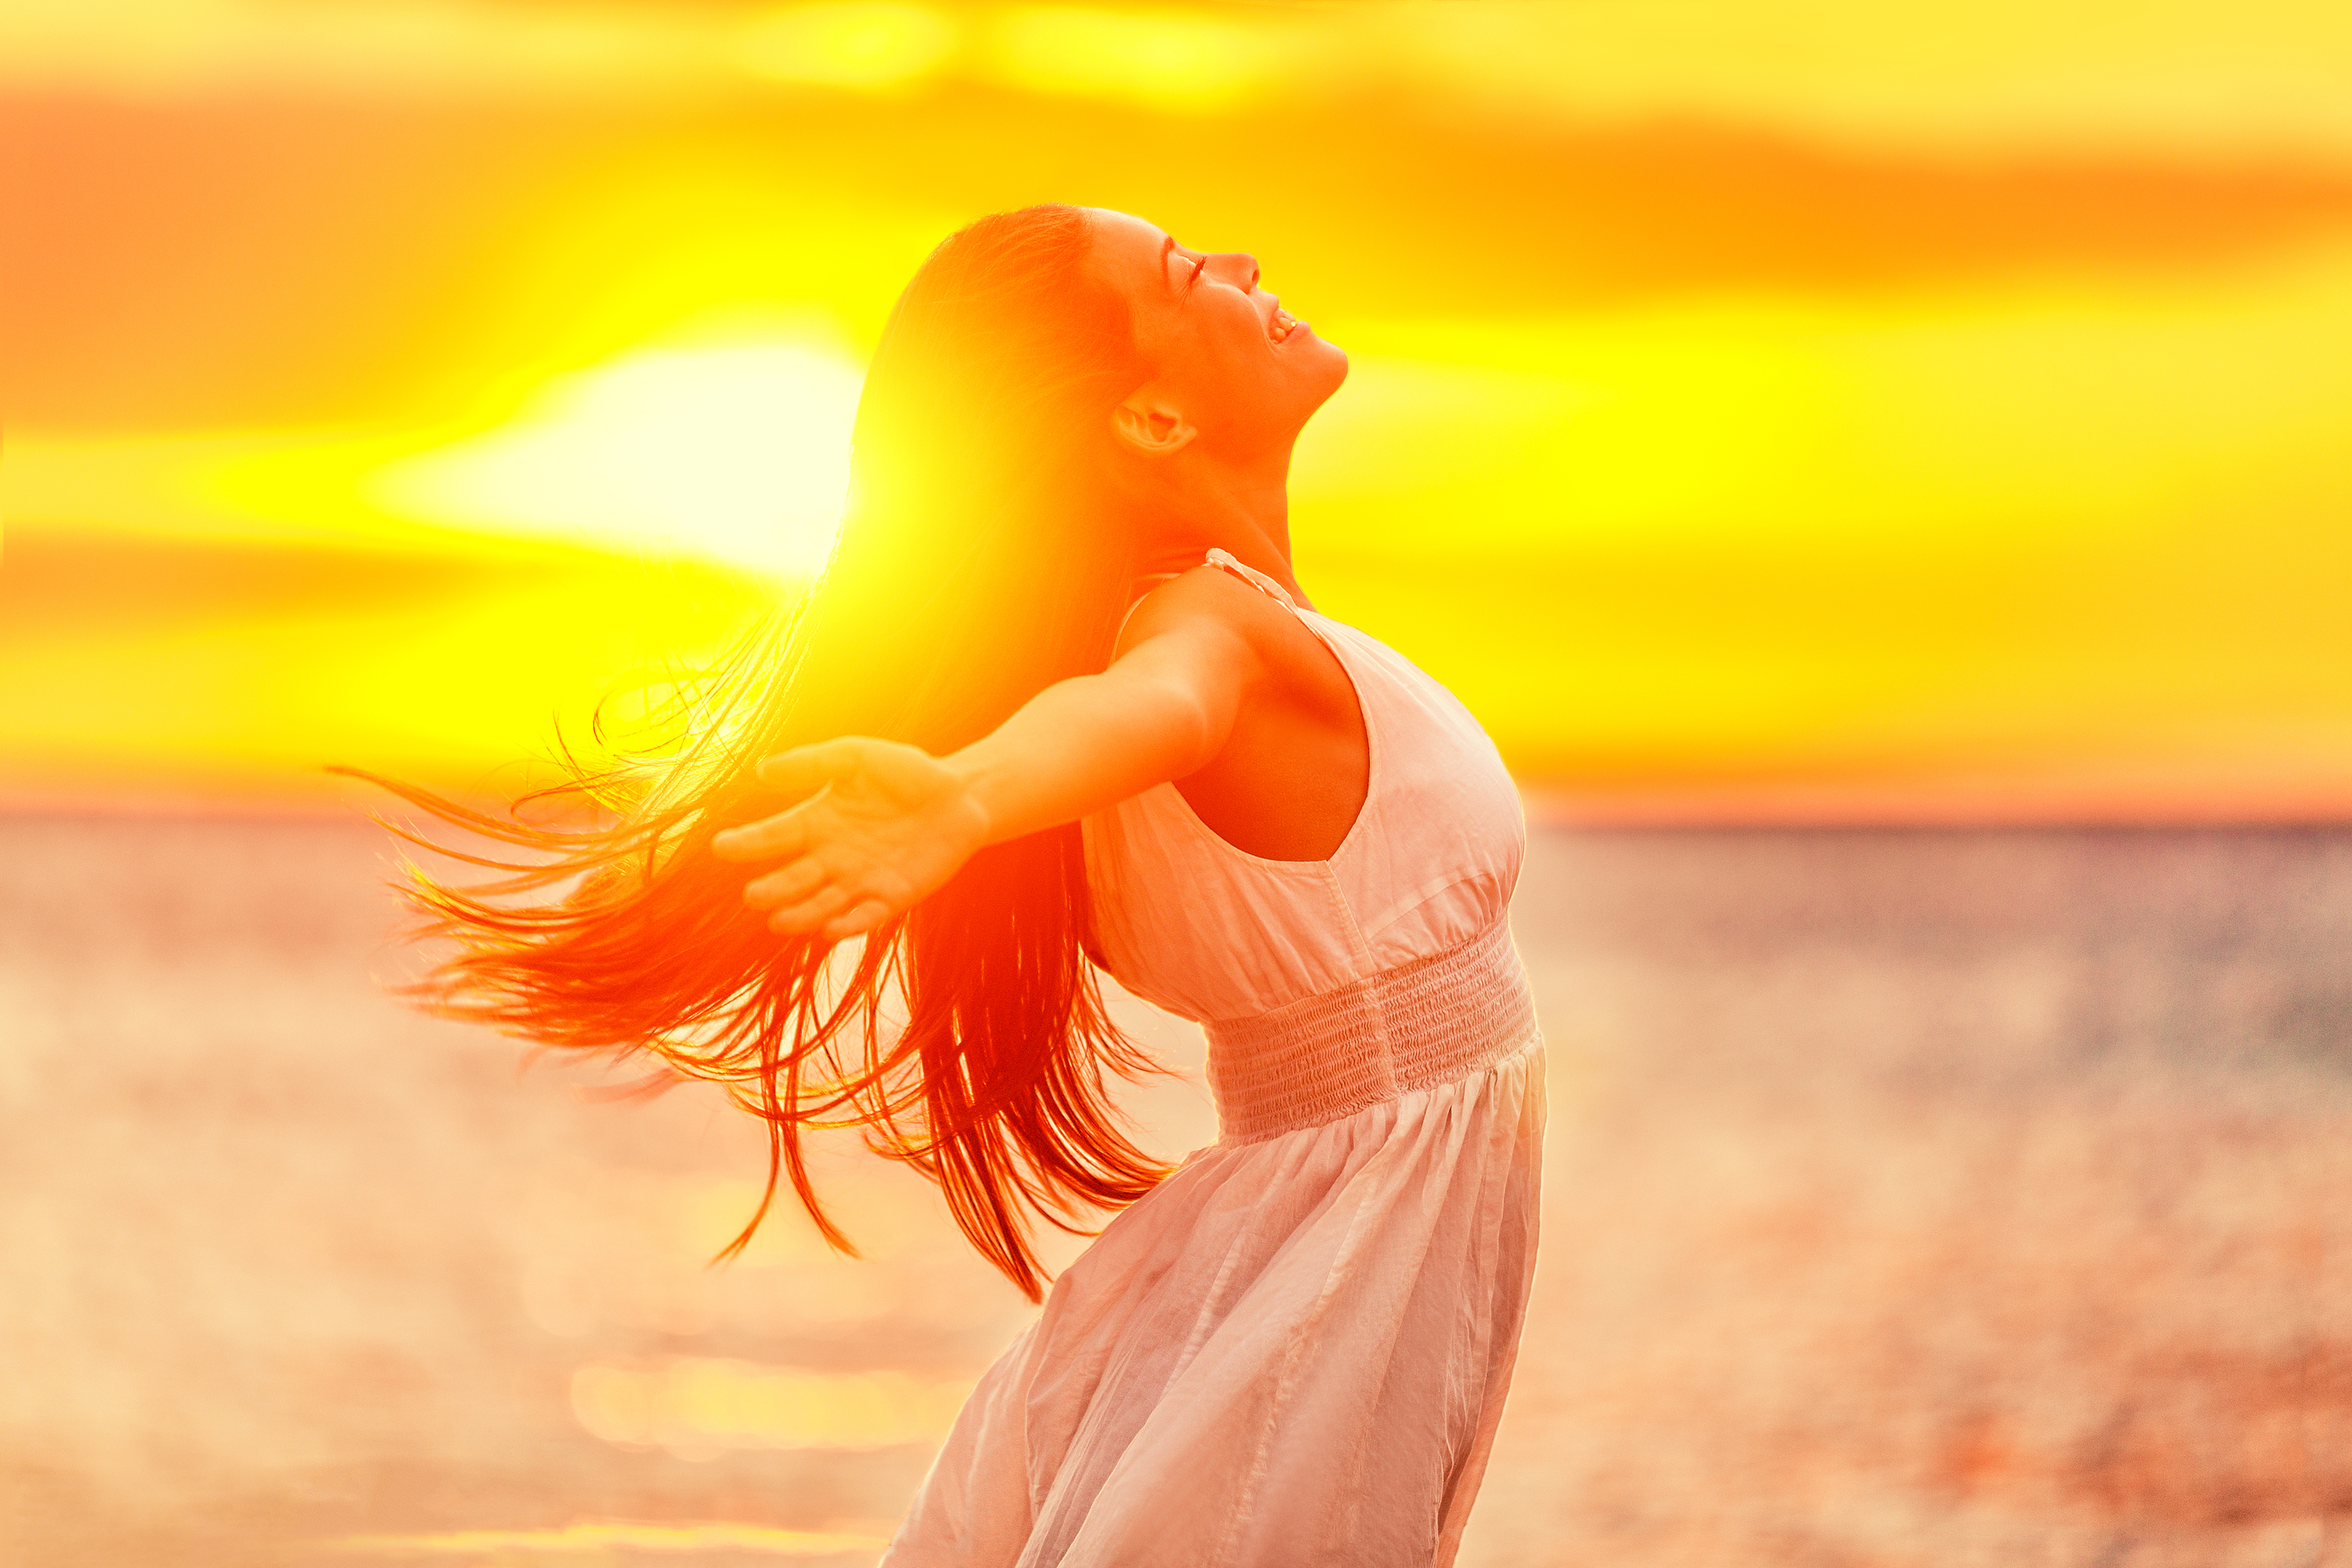 Happy woman feeling free with open arms in sunshine at beach sunset. Freedom and carefree enjoyment